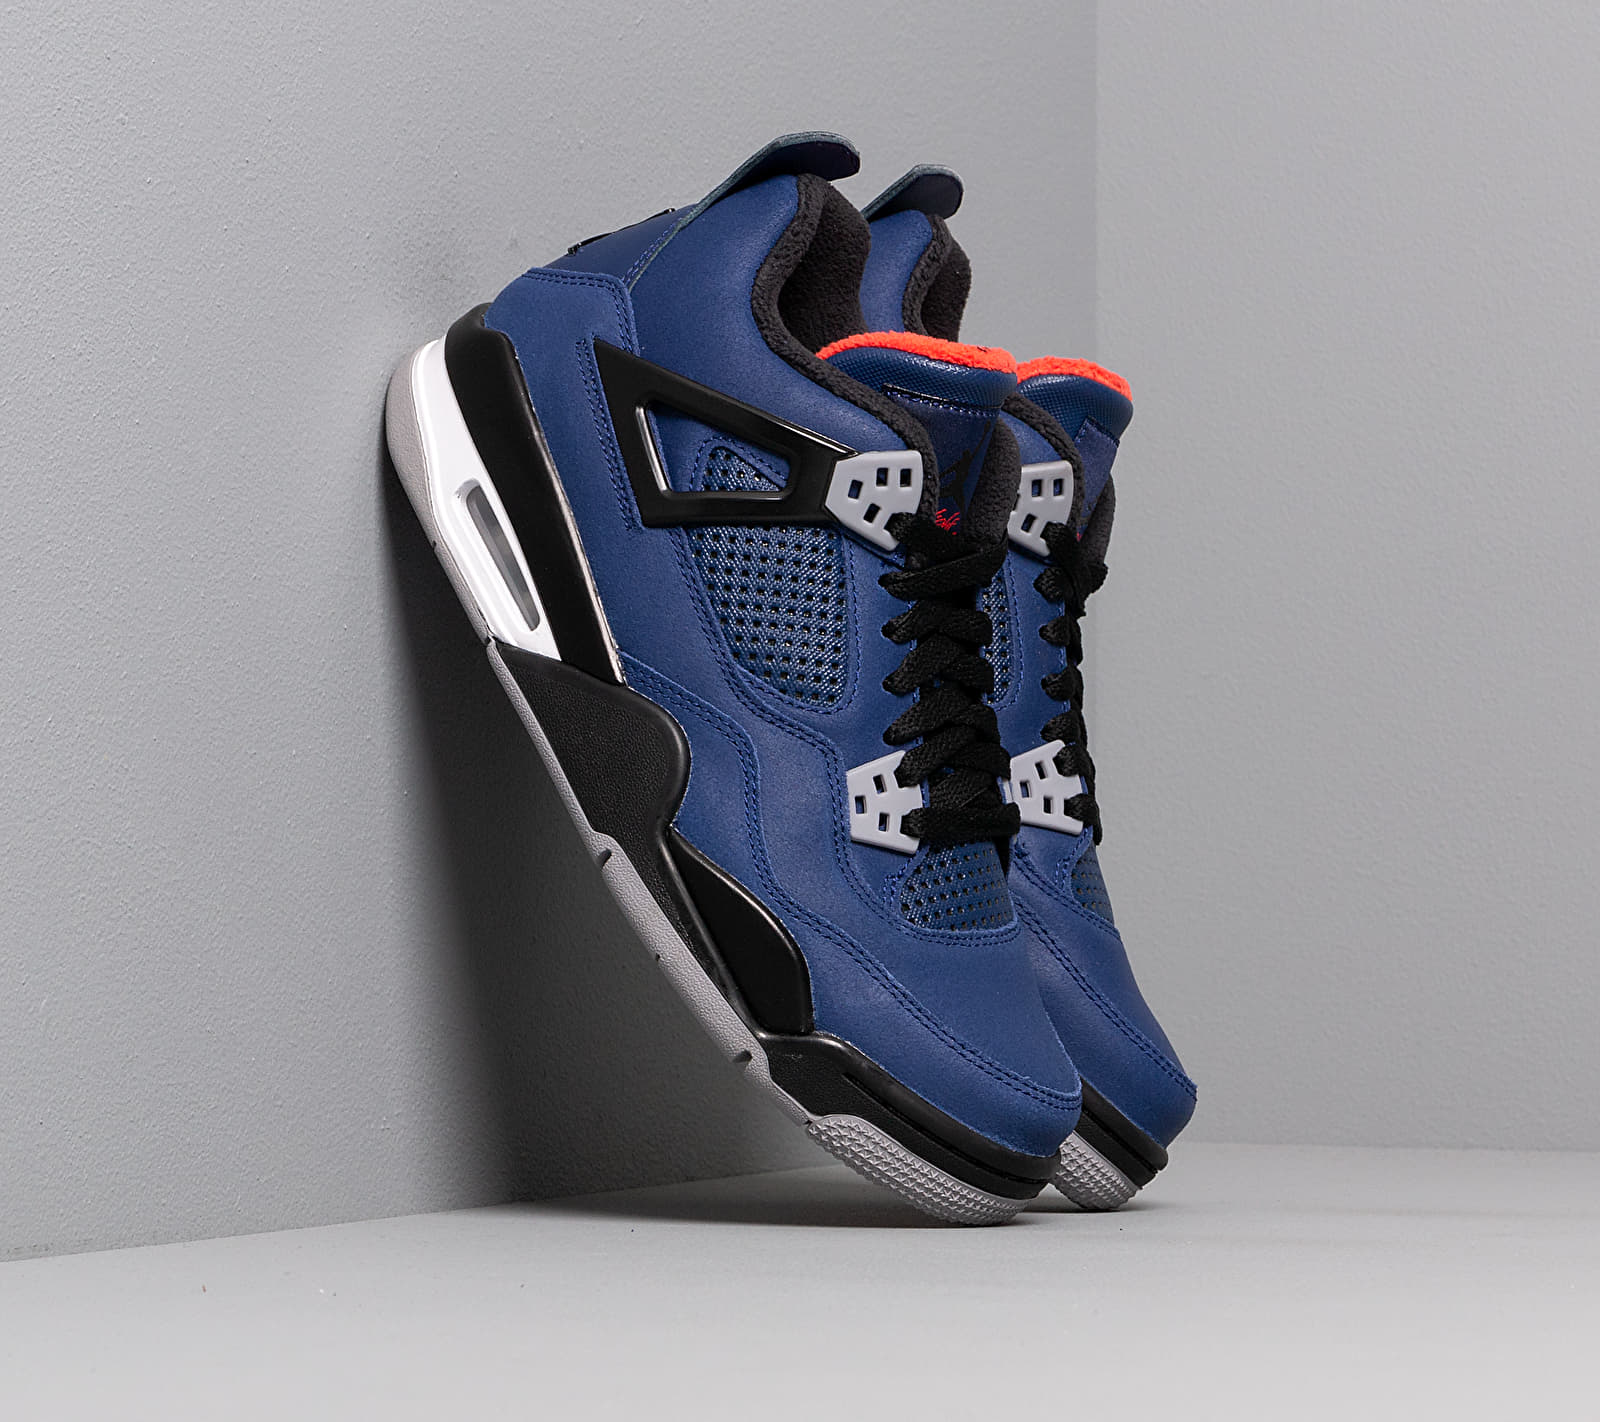 Air Jordan 4 Retro Wntr Bg Loyal Blue/ Black-White-Habanero Red EUR 38.5